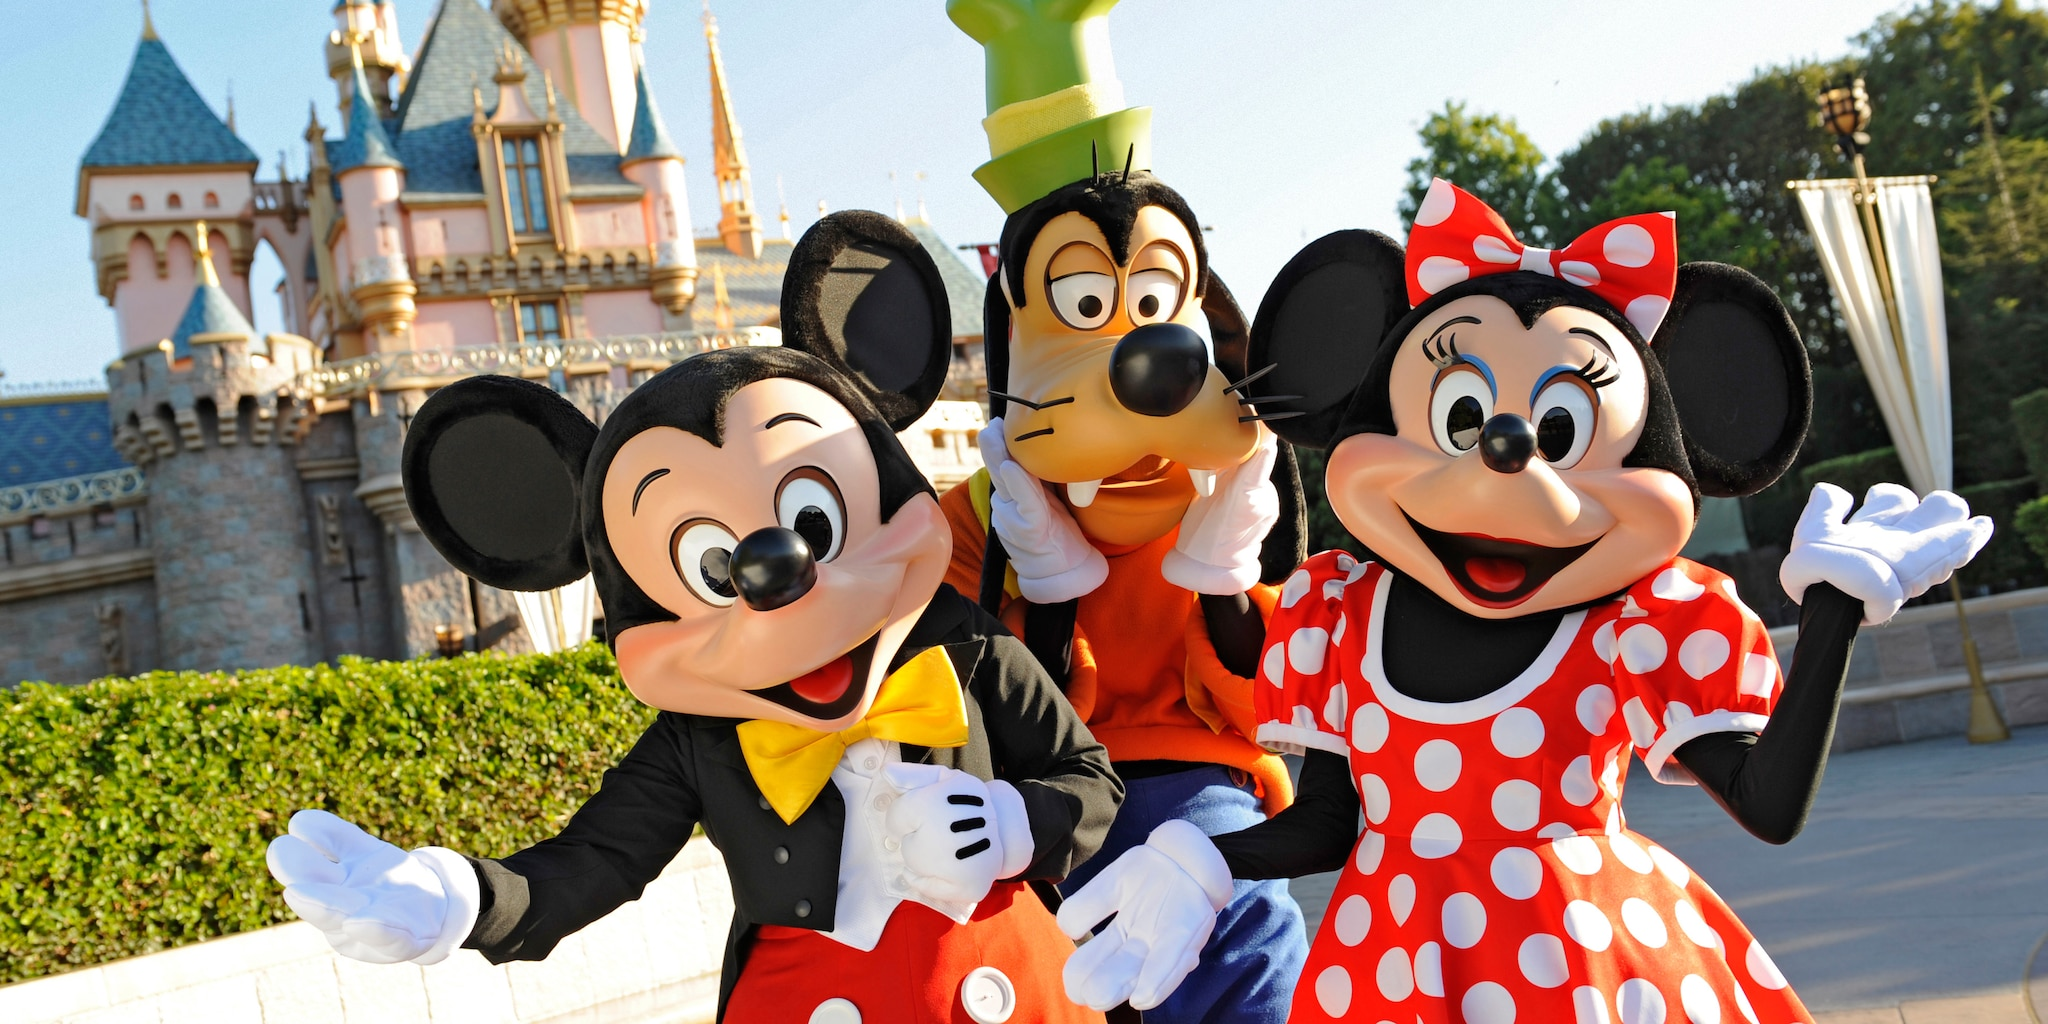 Mickey Mouse, Minnie Mouse and Goofy Characters outside Sleeping Beauty Castle at Disneyland Park